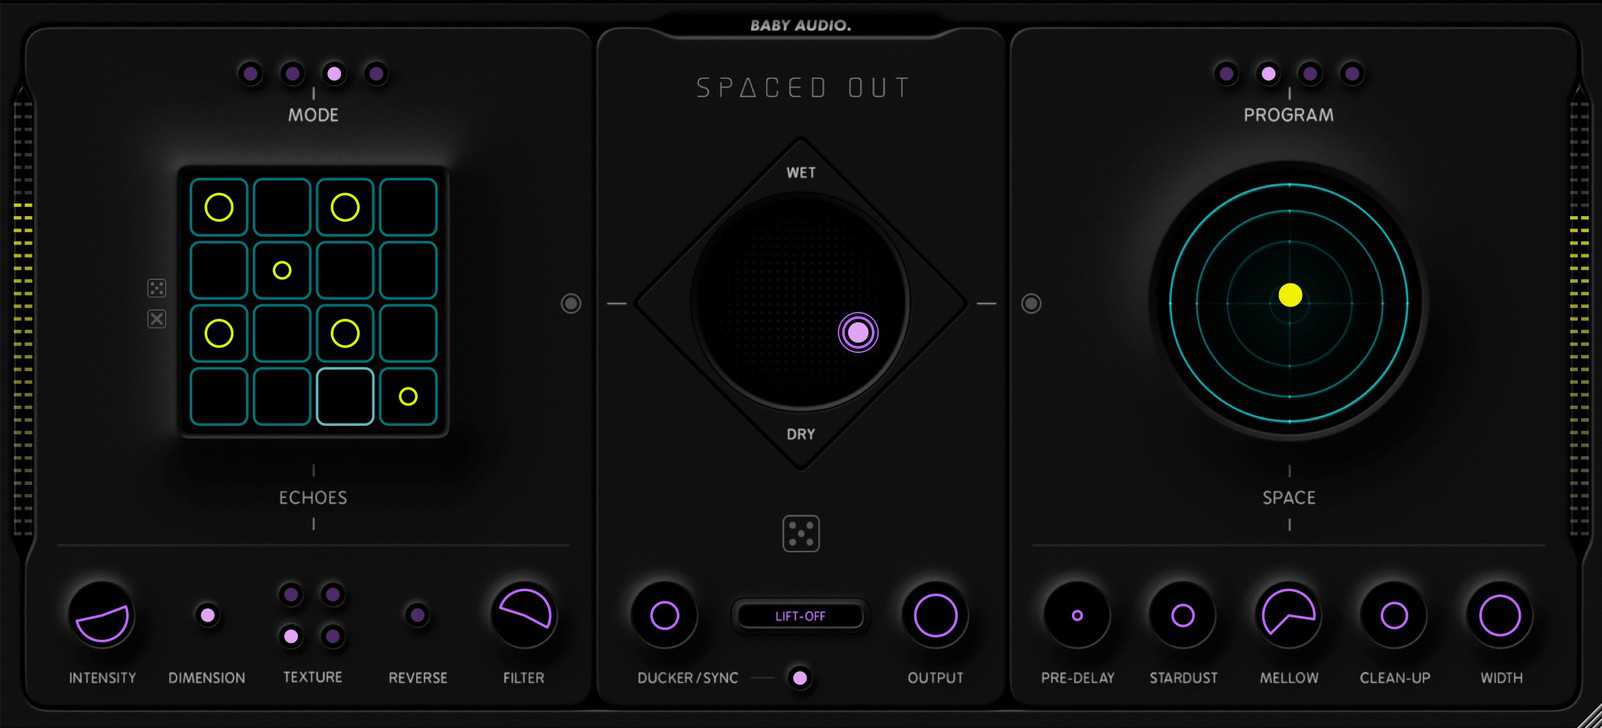 Spaced Out's dark skin is the perfect fit for those late night mixing sessions.